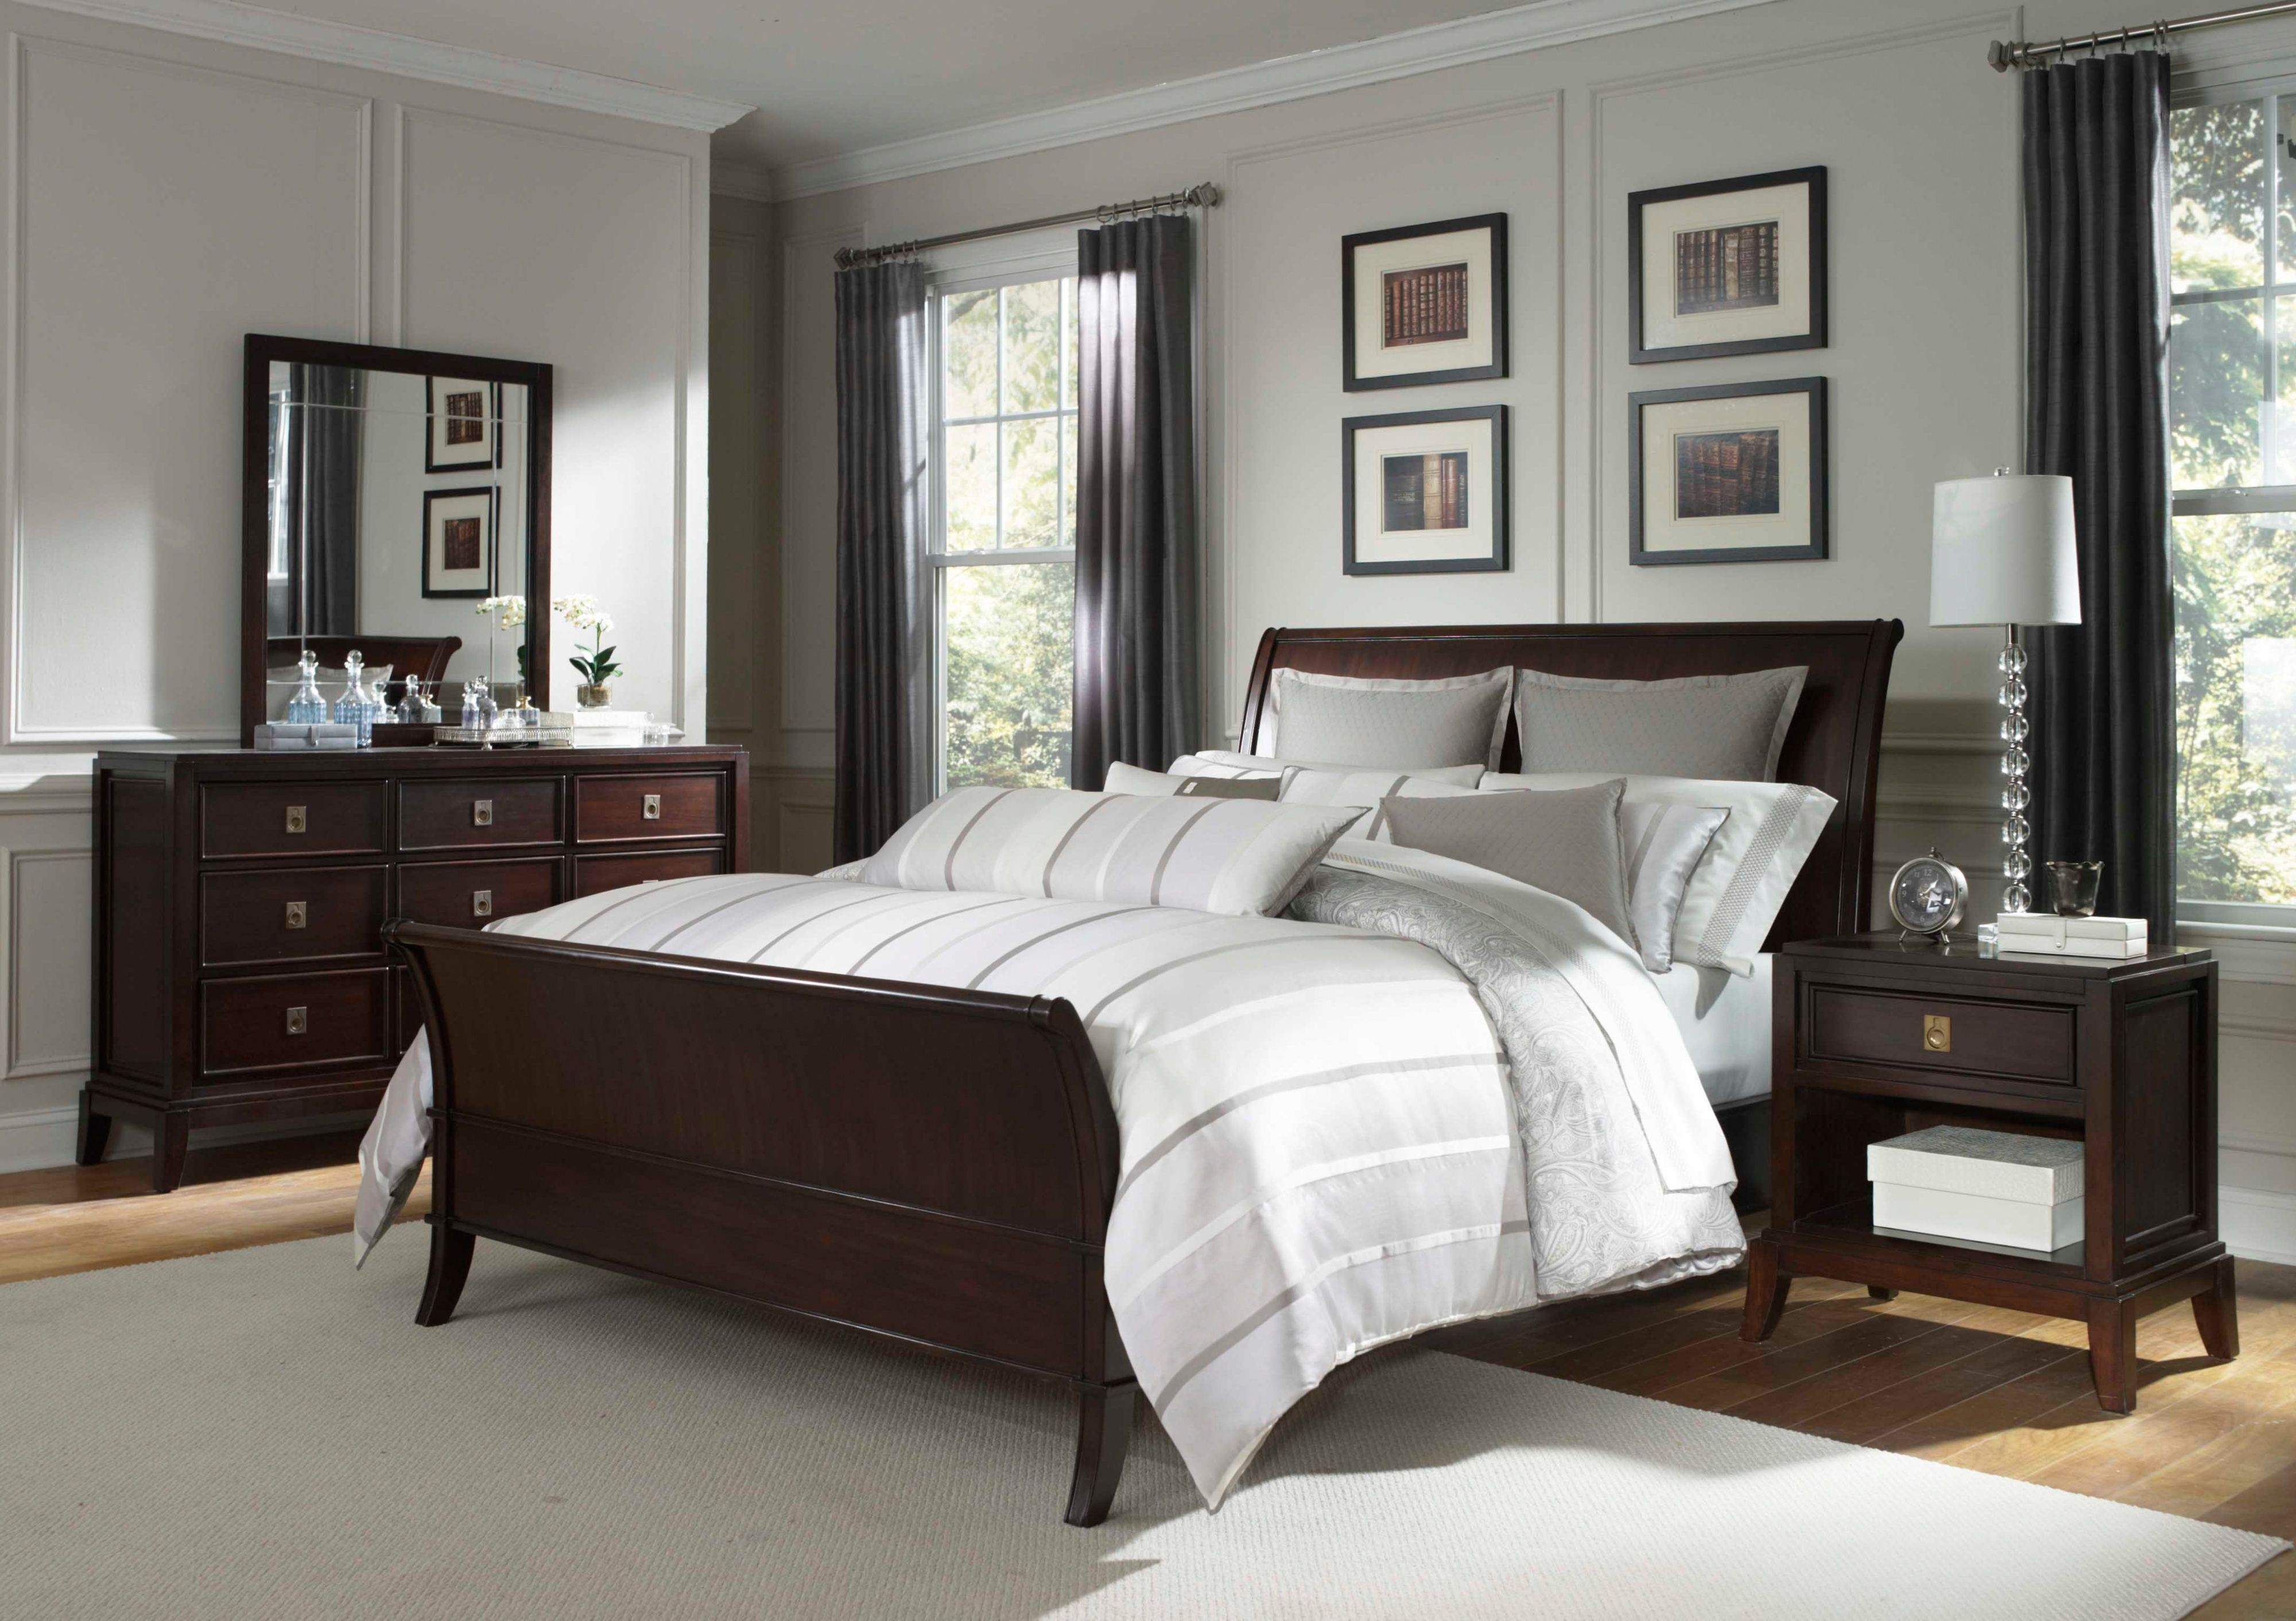 Somerset Bed Brown Furniture Bedroom Dark Wood Bedroom